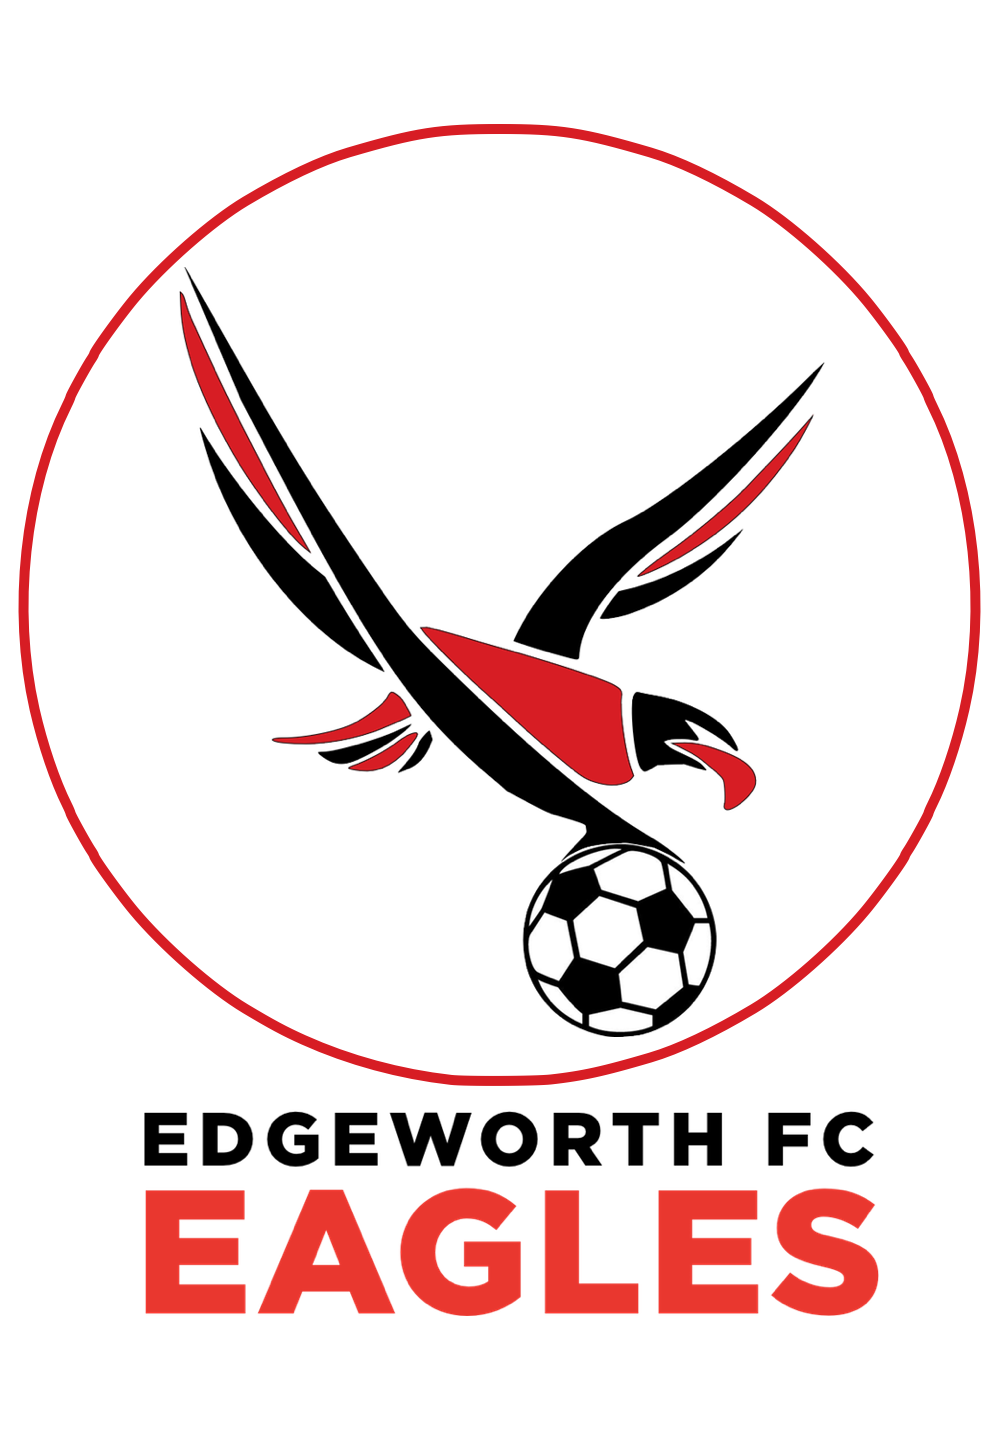 edgeworth-eagles-fc